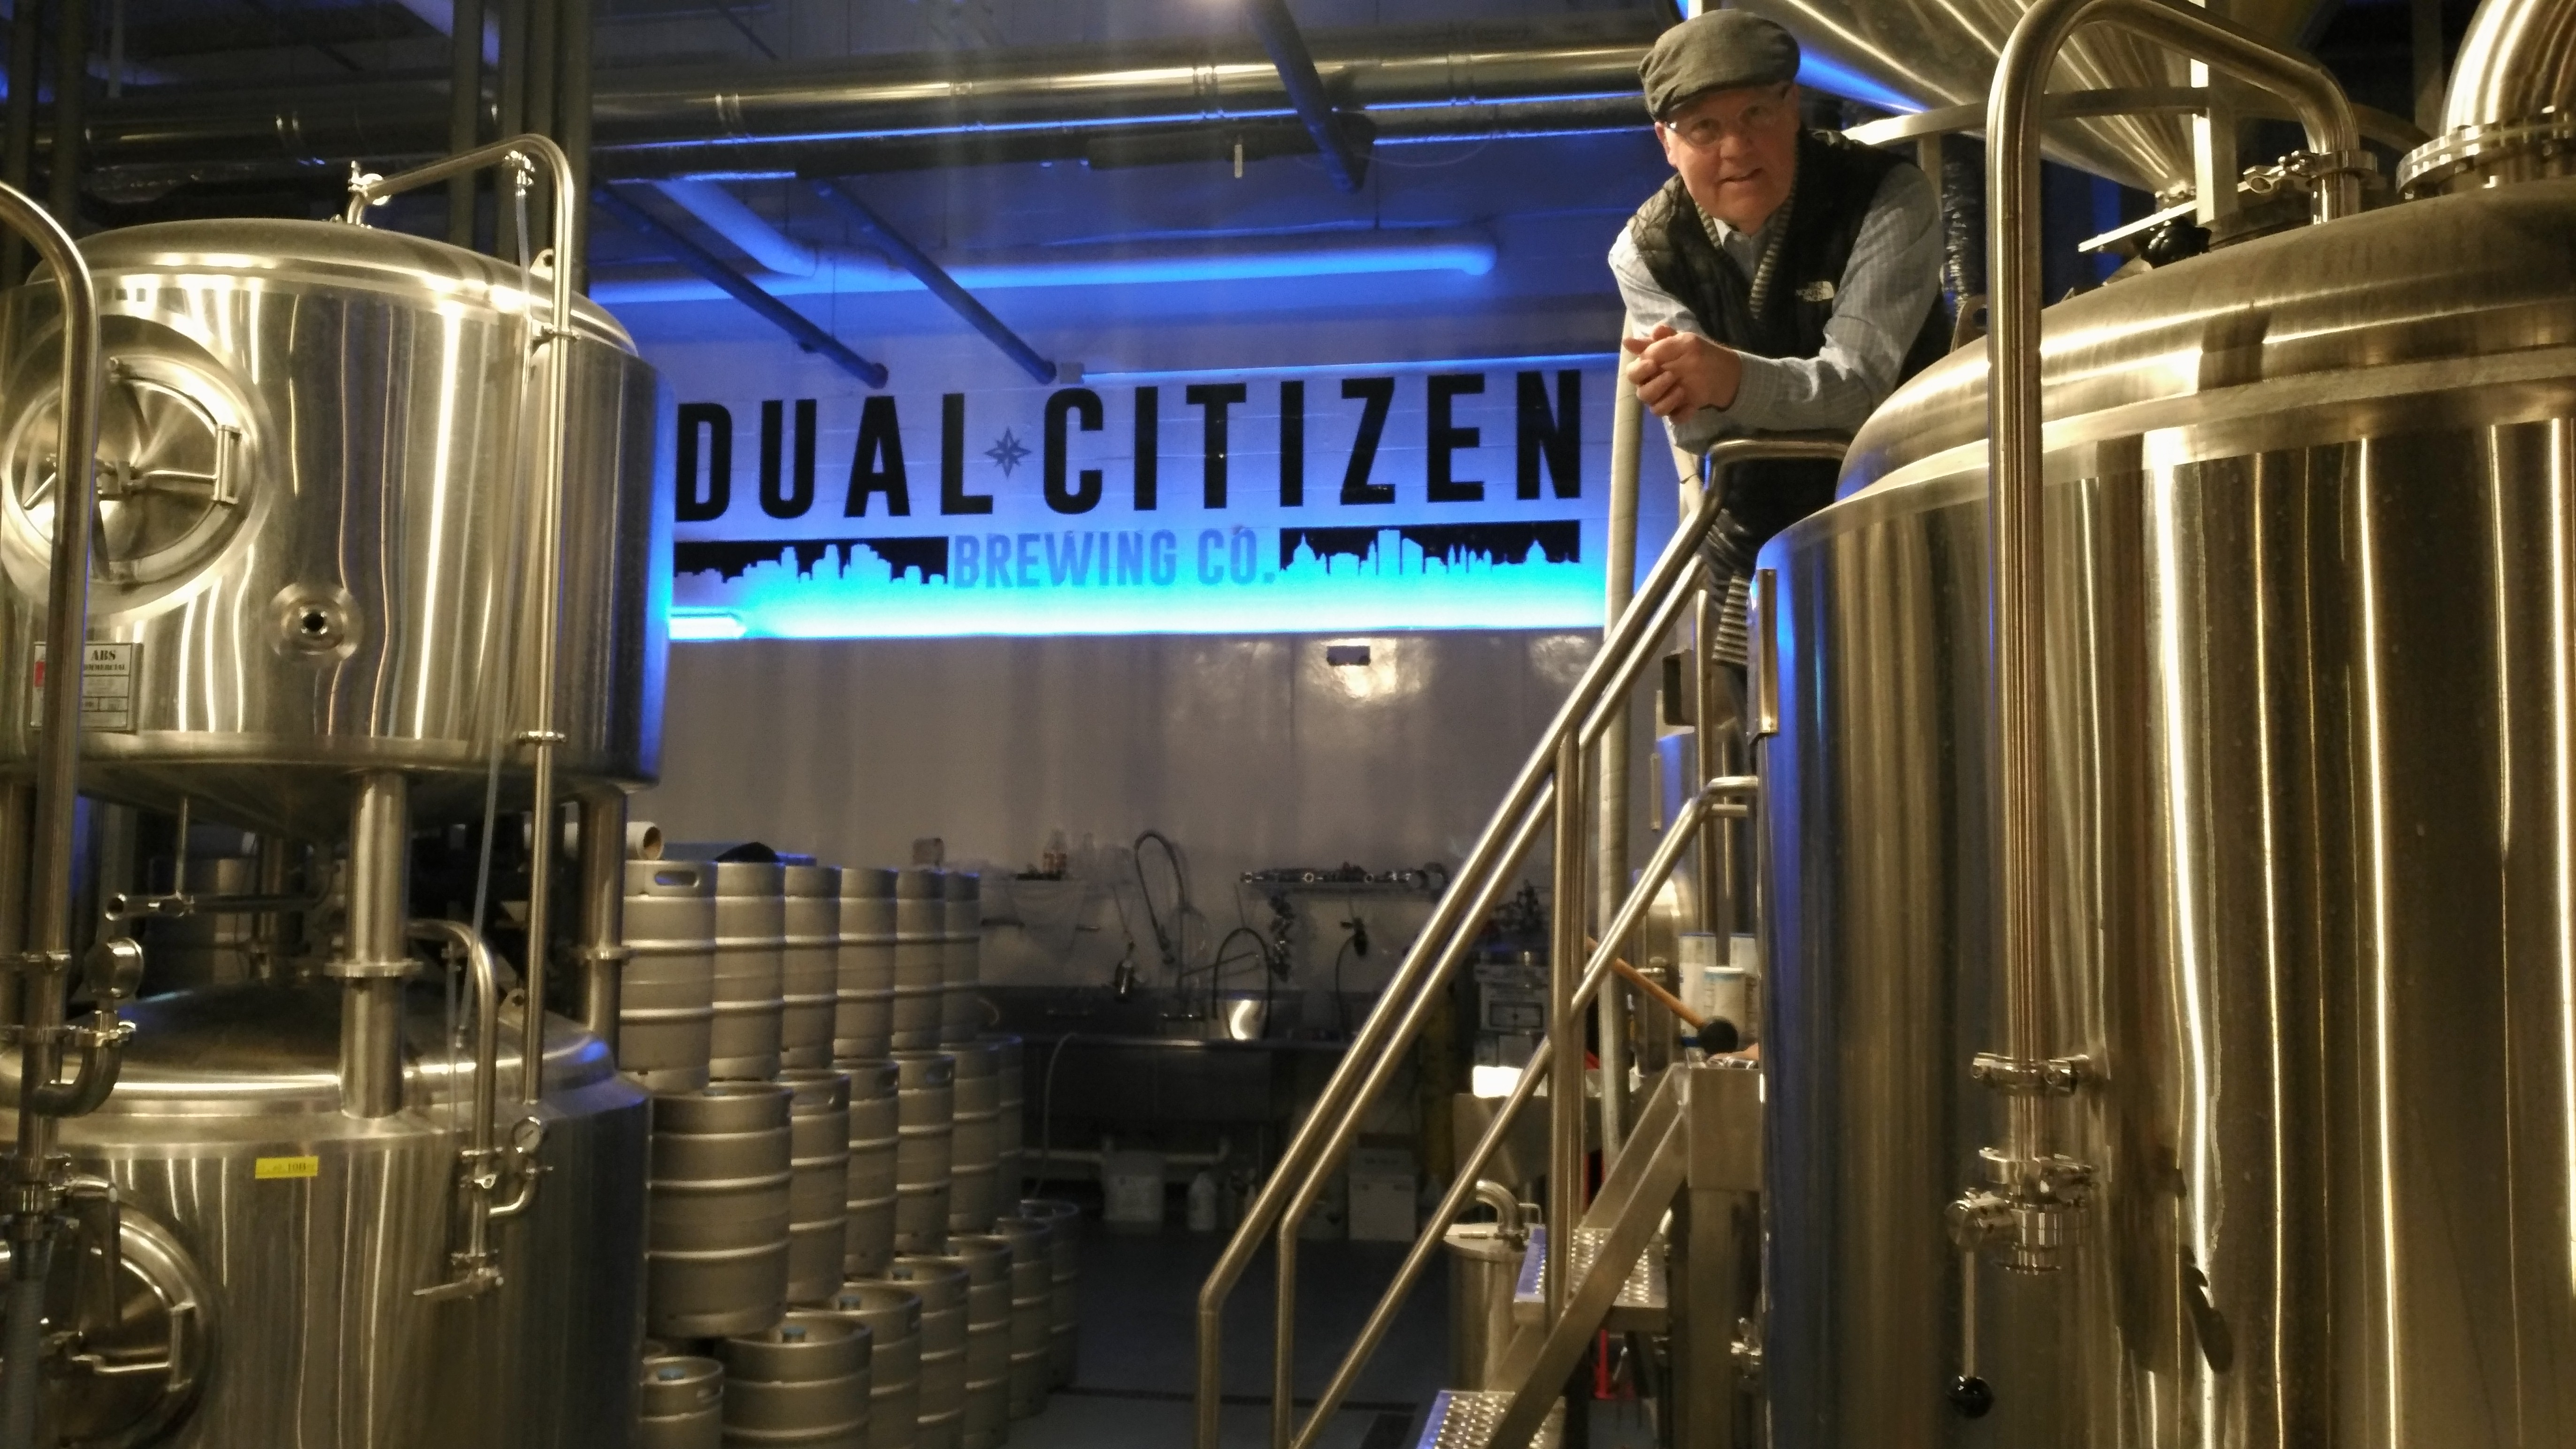 Dual Citizen Brewery Beer